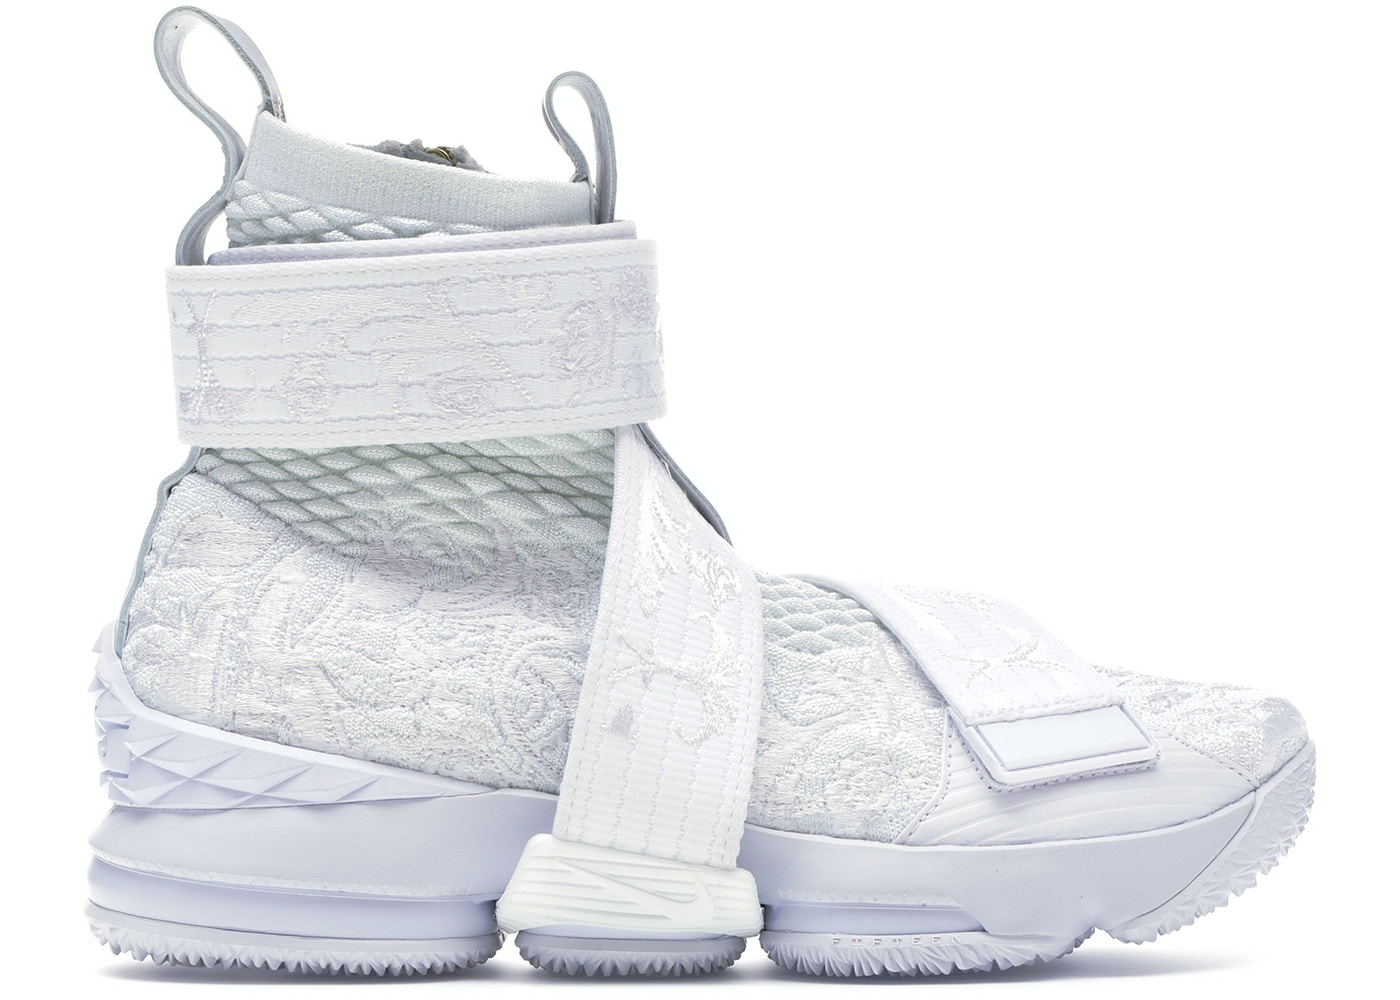 huge selection of b545b ced49 Nike LeBron 15 Shoes - Average Sale Price